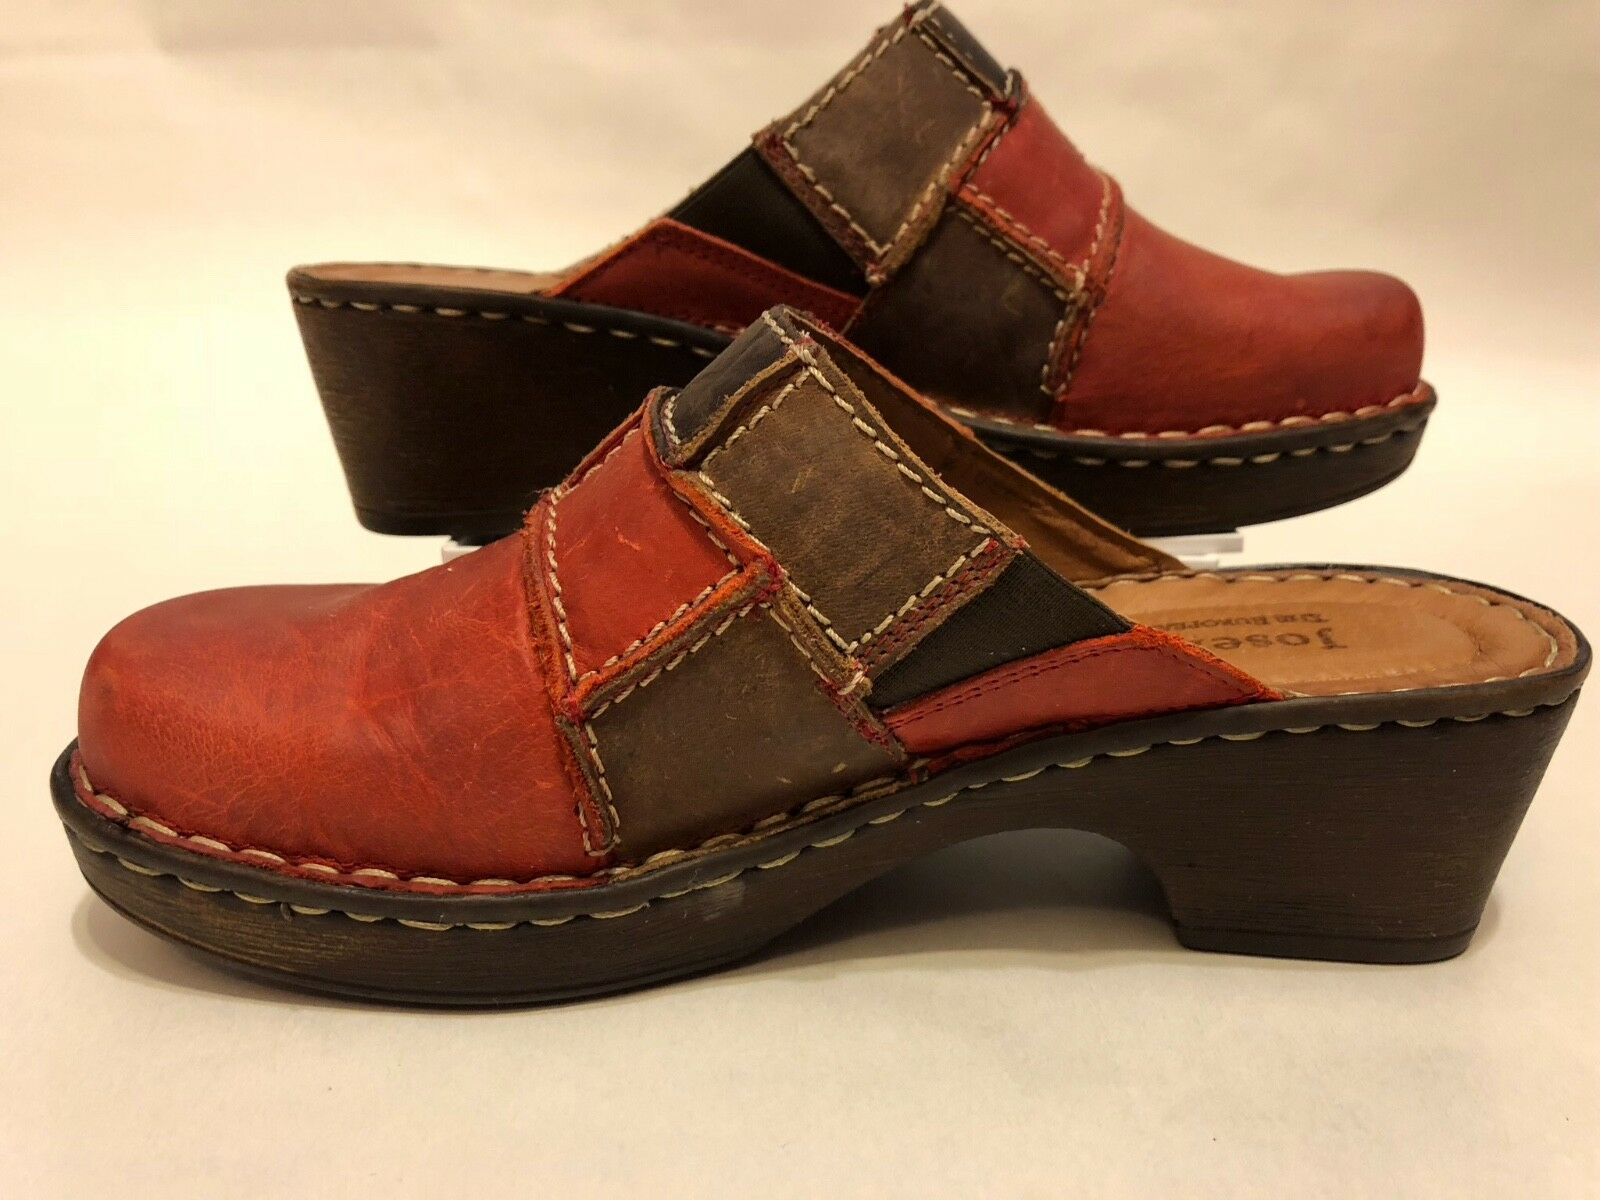 New Josef Seibel Rebecca Women Leather Clog shoes Slip On Red Brown Bark Size 36